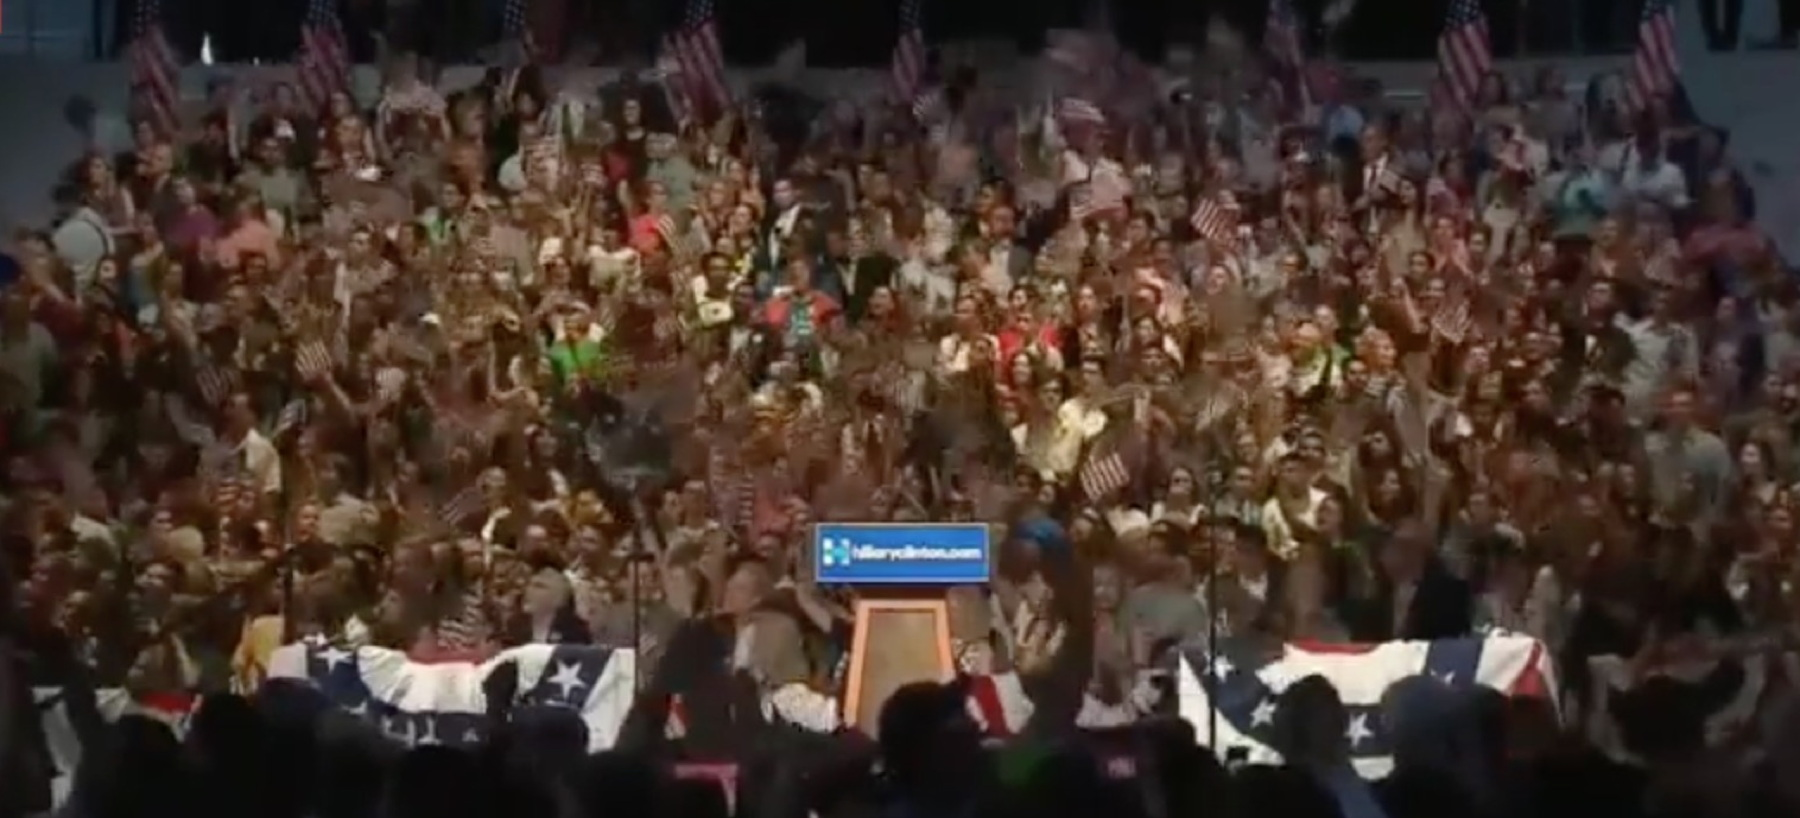 Watch Live Now Hillary Clinton Delivers Historic Speech